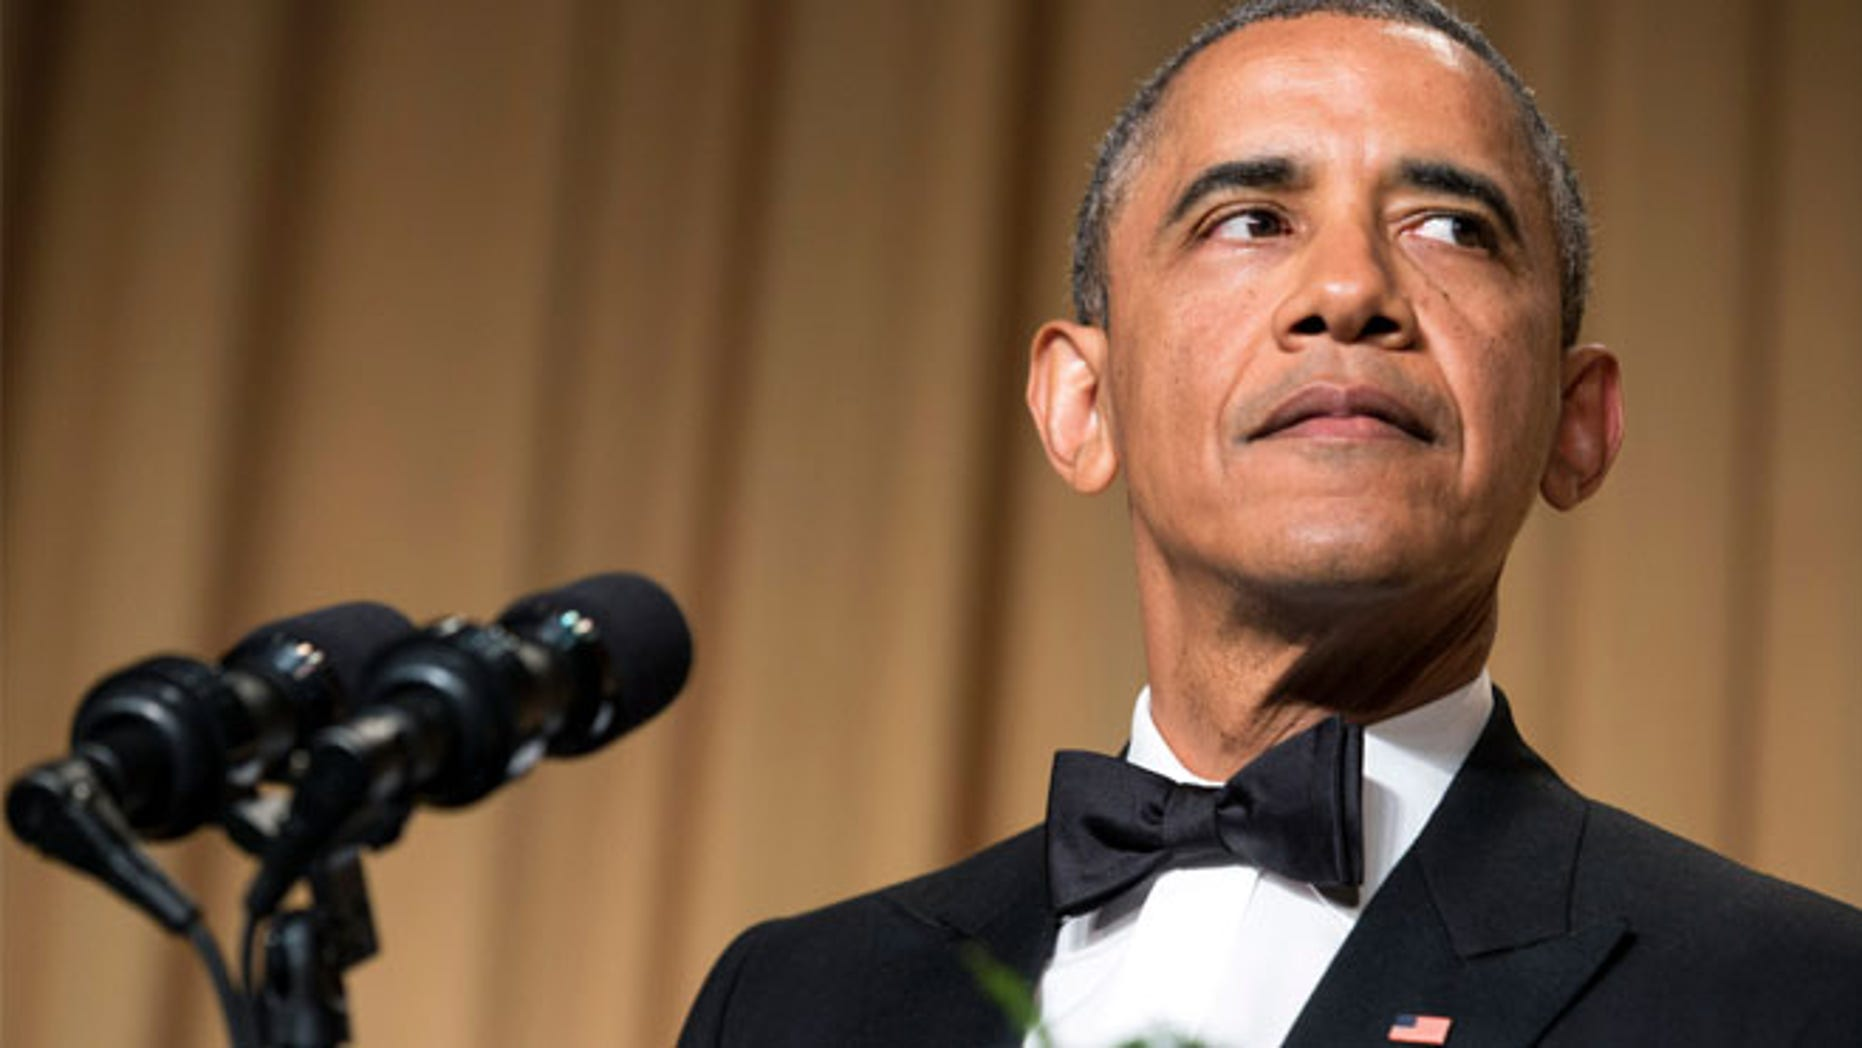 President Barack Obama's jokes targeted Donald Trump at the White House Correspondents' Association dinner in 2011.